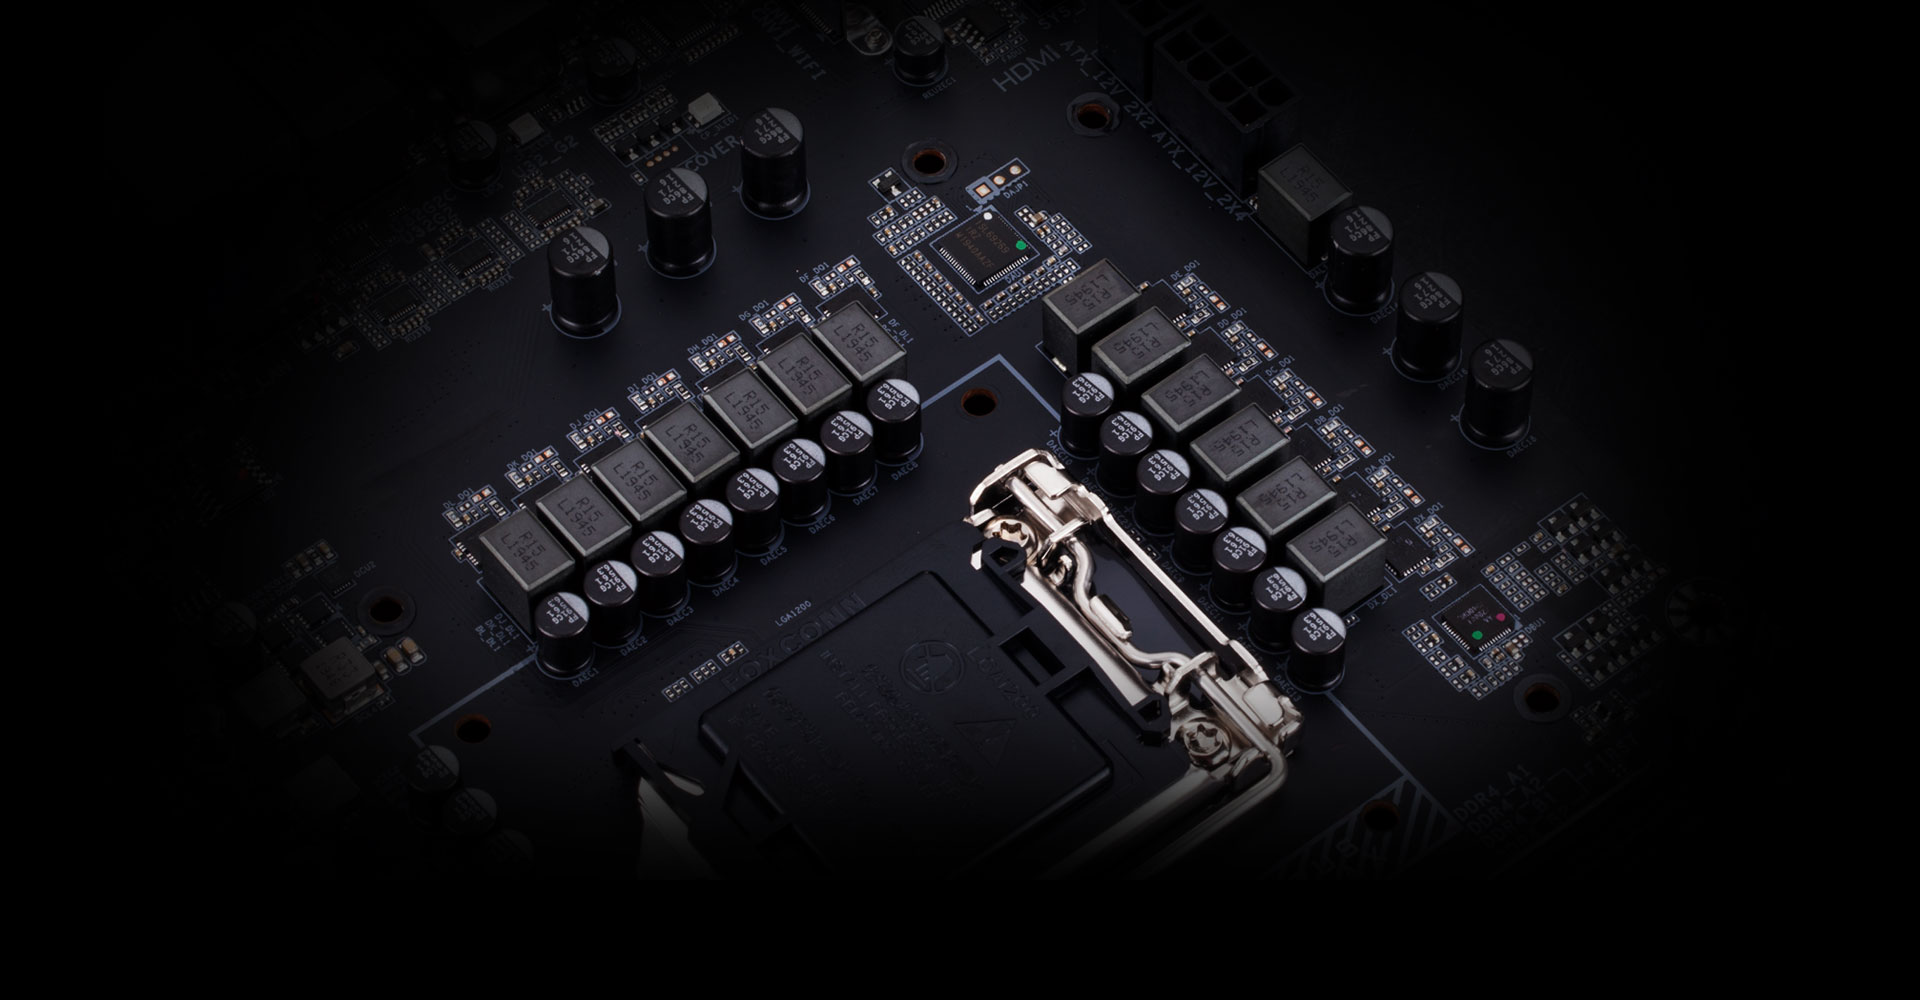 ultimate-power-design of the motherboard